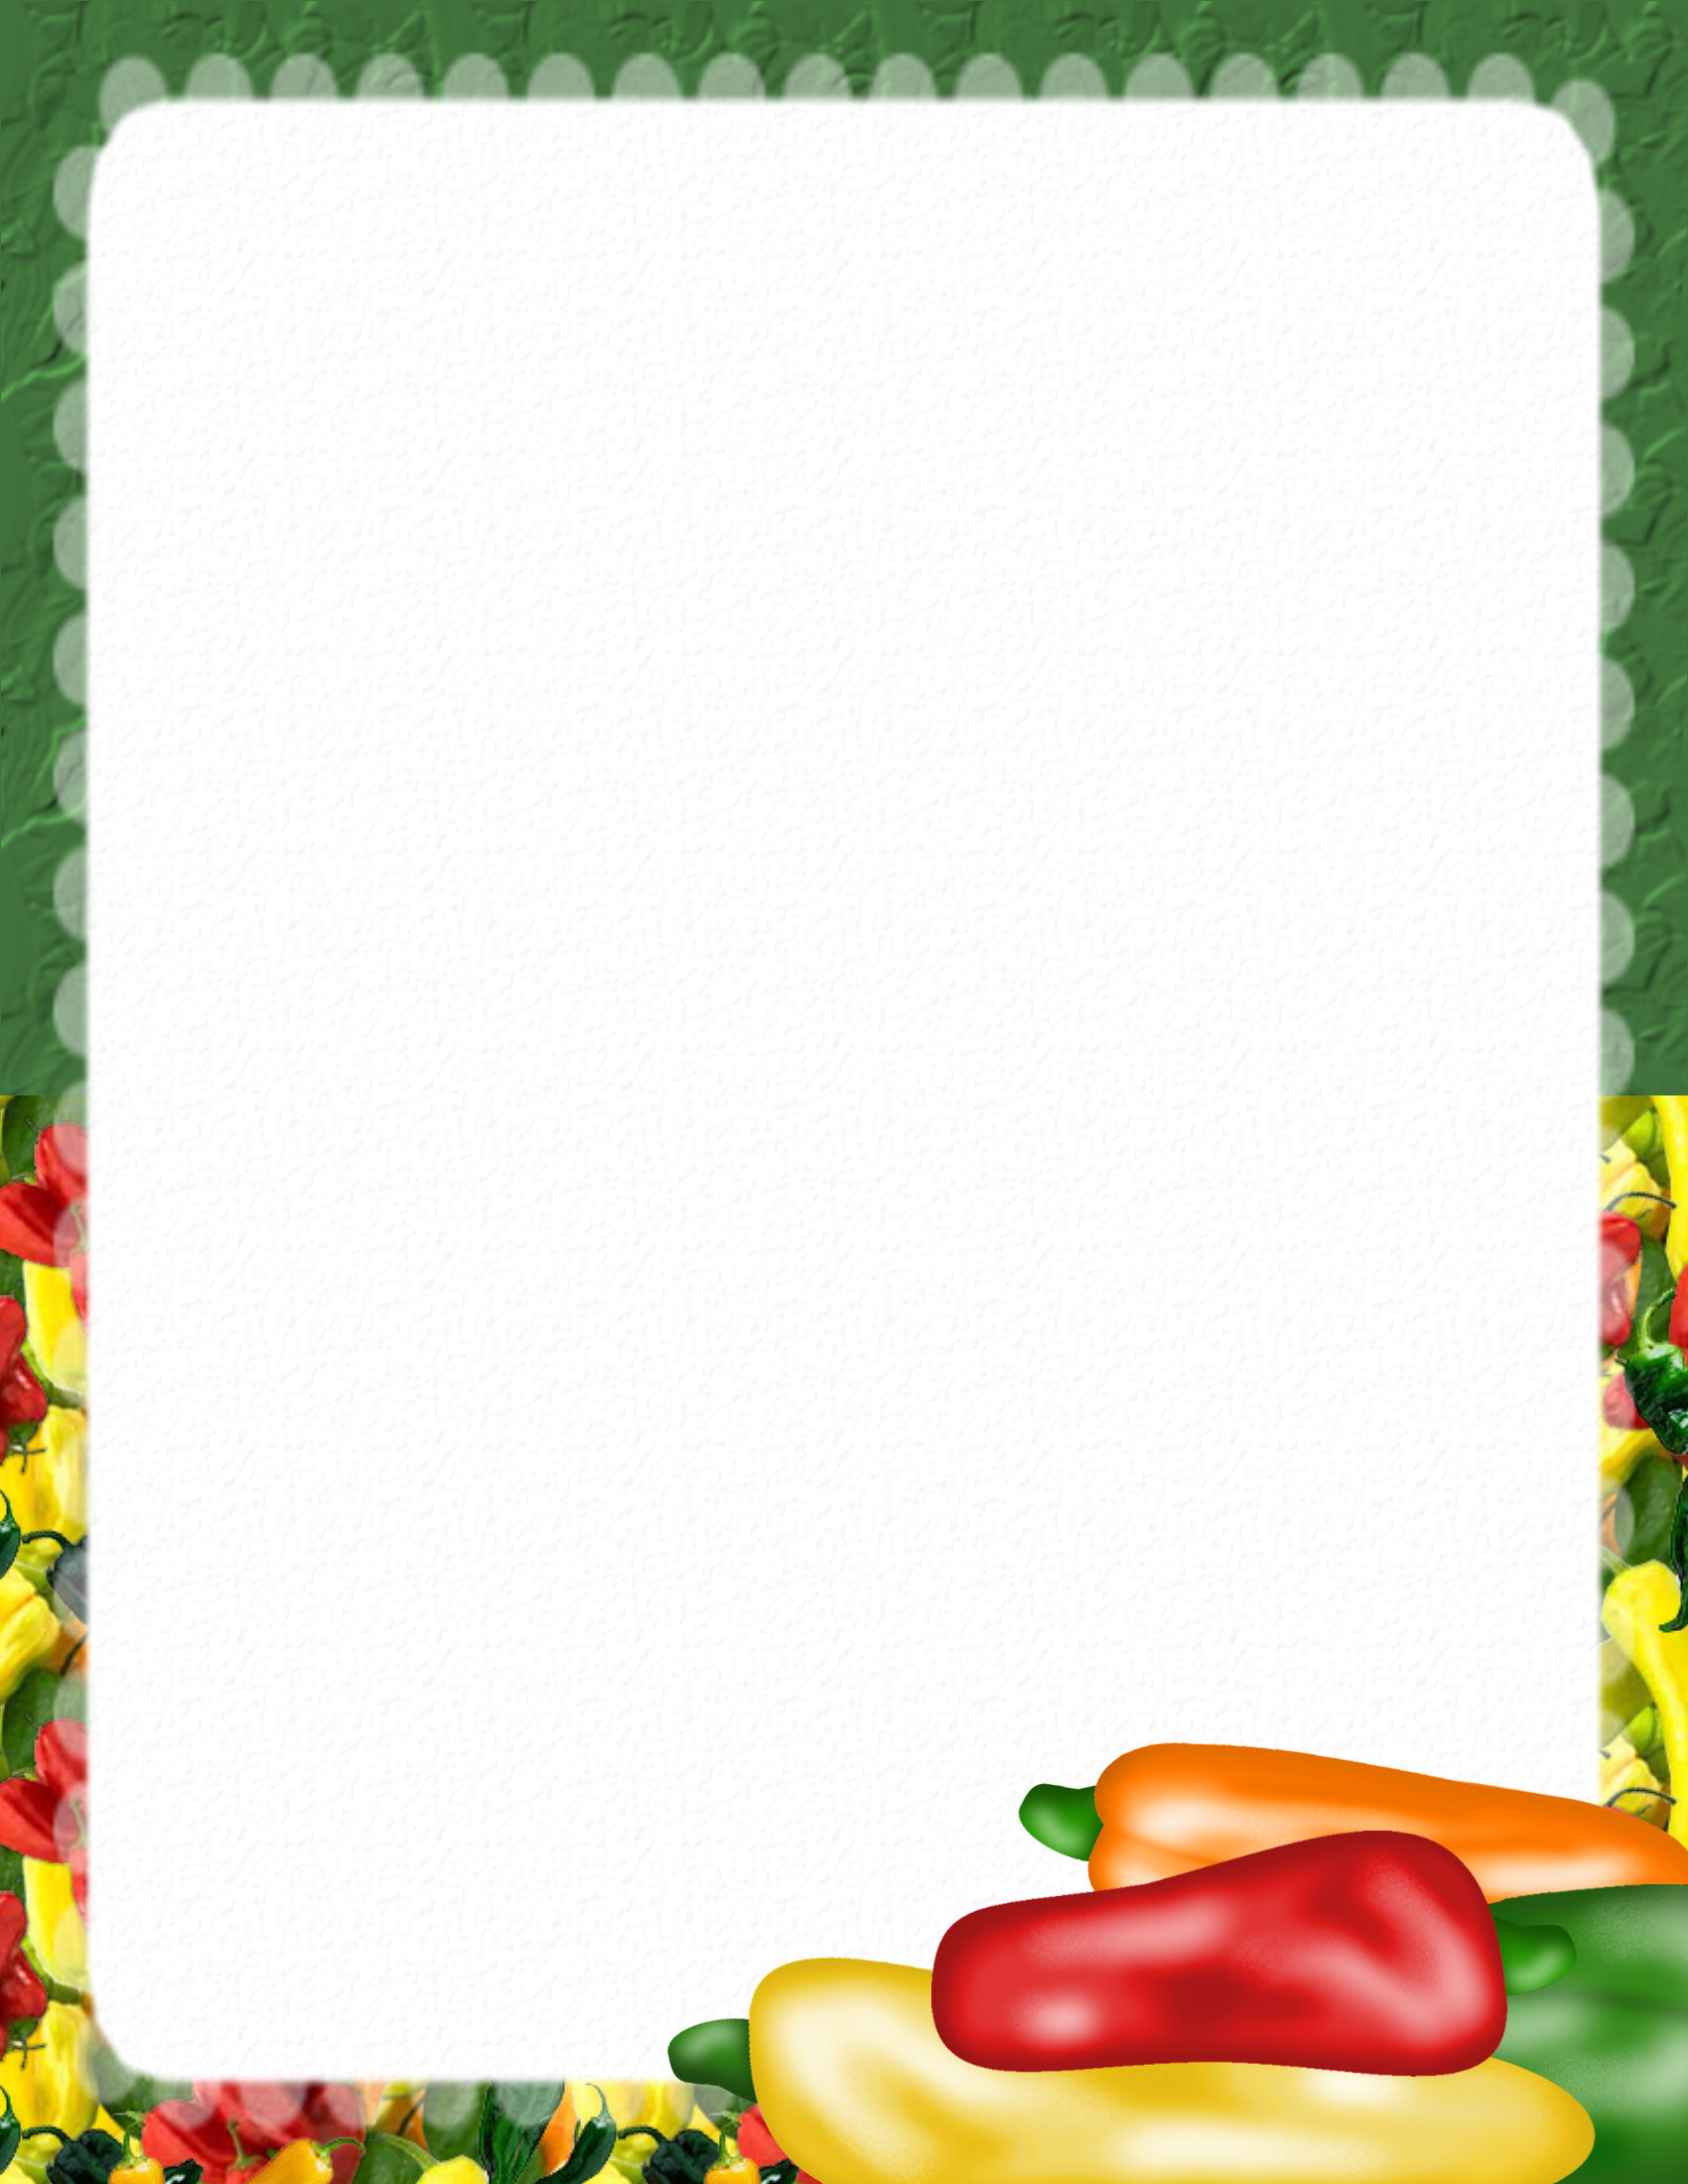 14 Food Paper Border Designs Images.